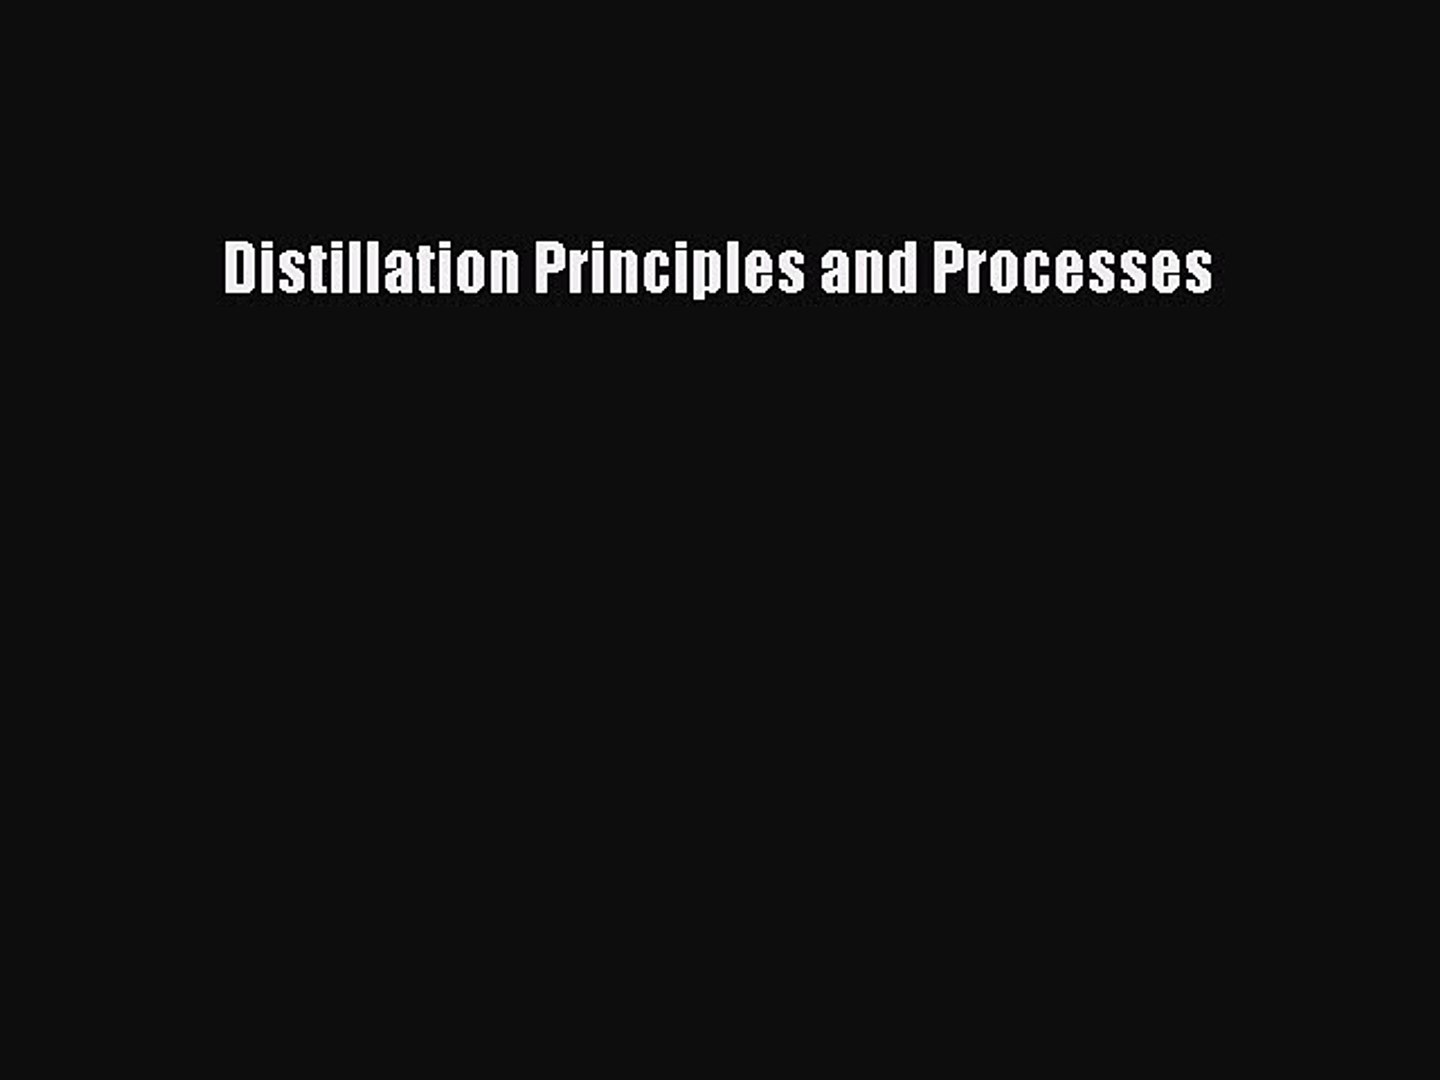 General Principles, Applications